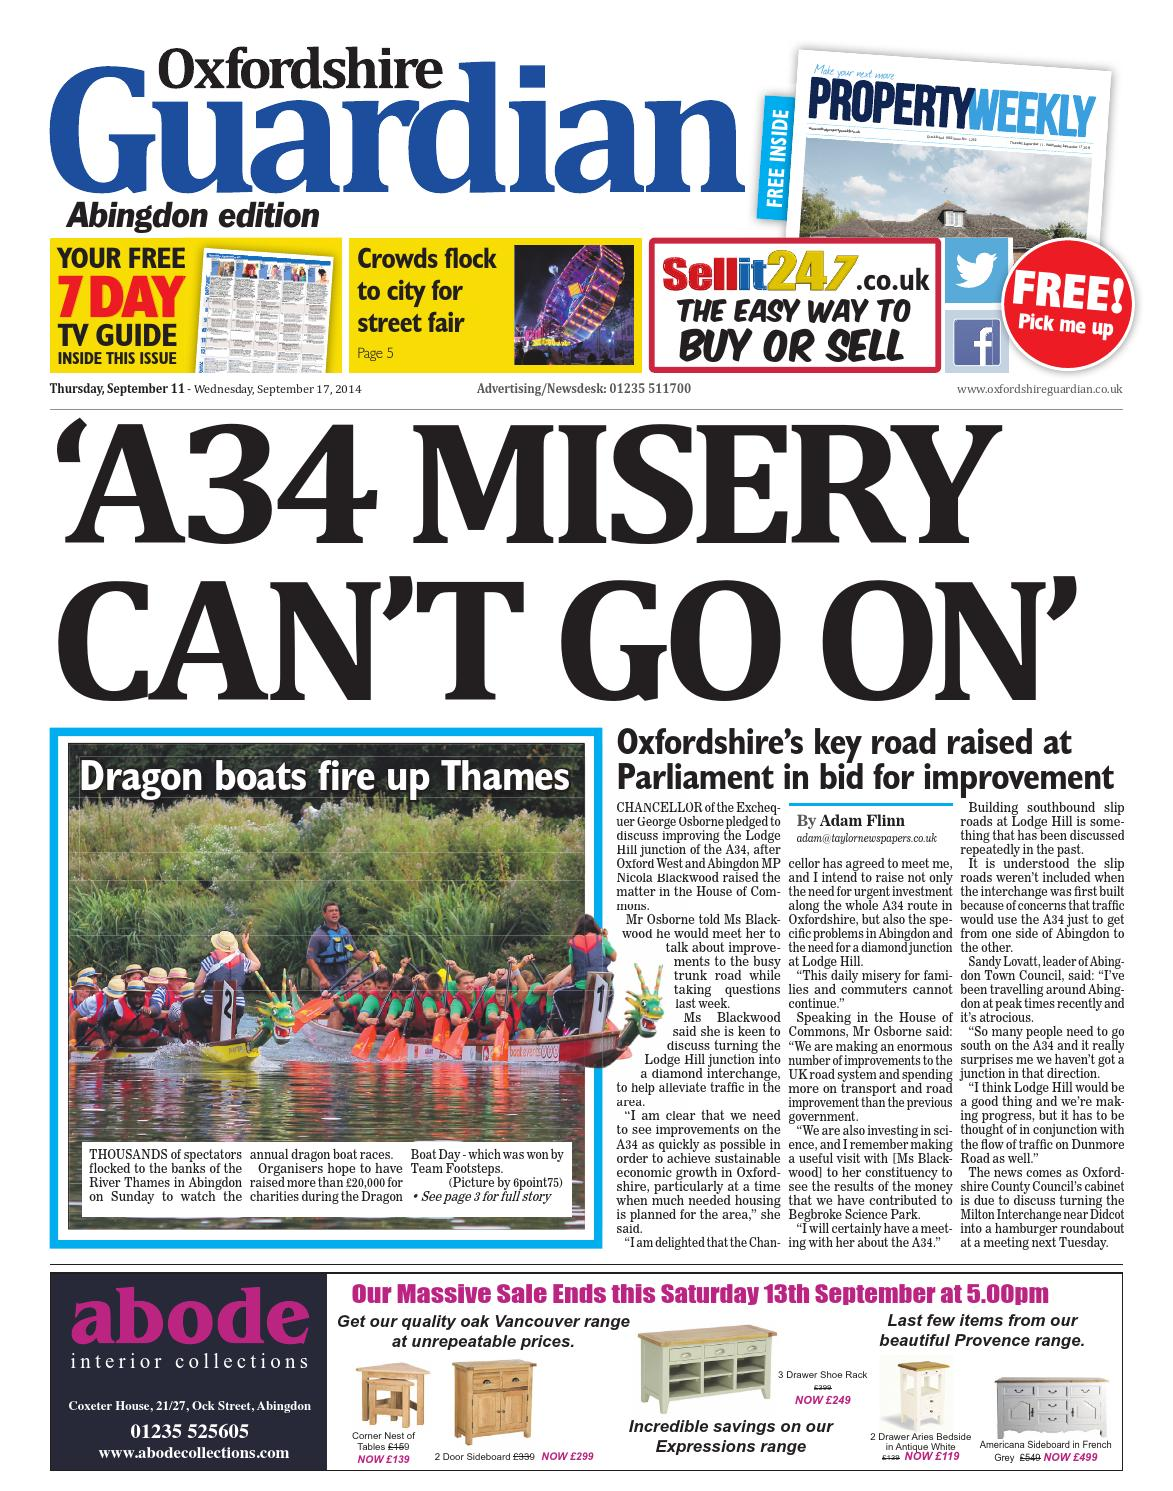 11 september 2014 oxfordshire guardian abingdon by taylor newspapers 11 september 2014 oxfordshire guardian abingdon by taylor newspapers issuu fandeluxe Gallery